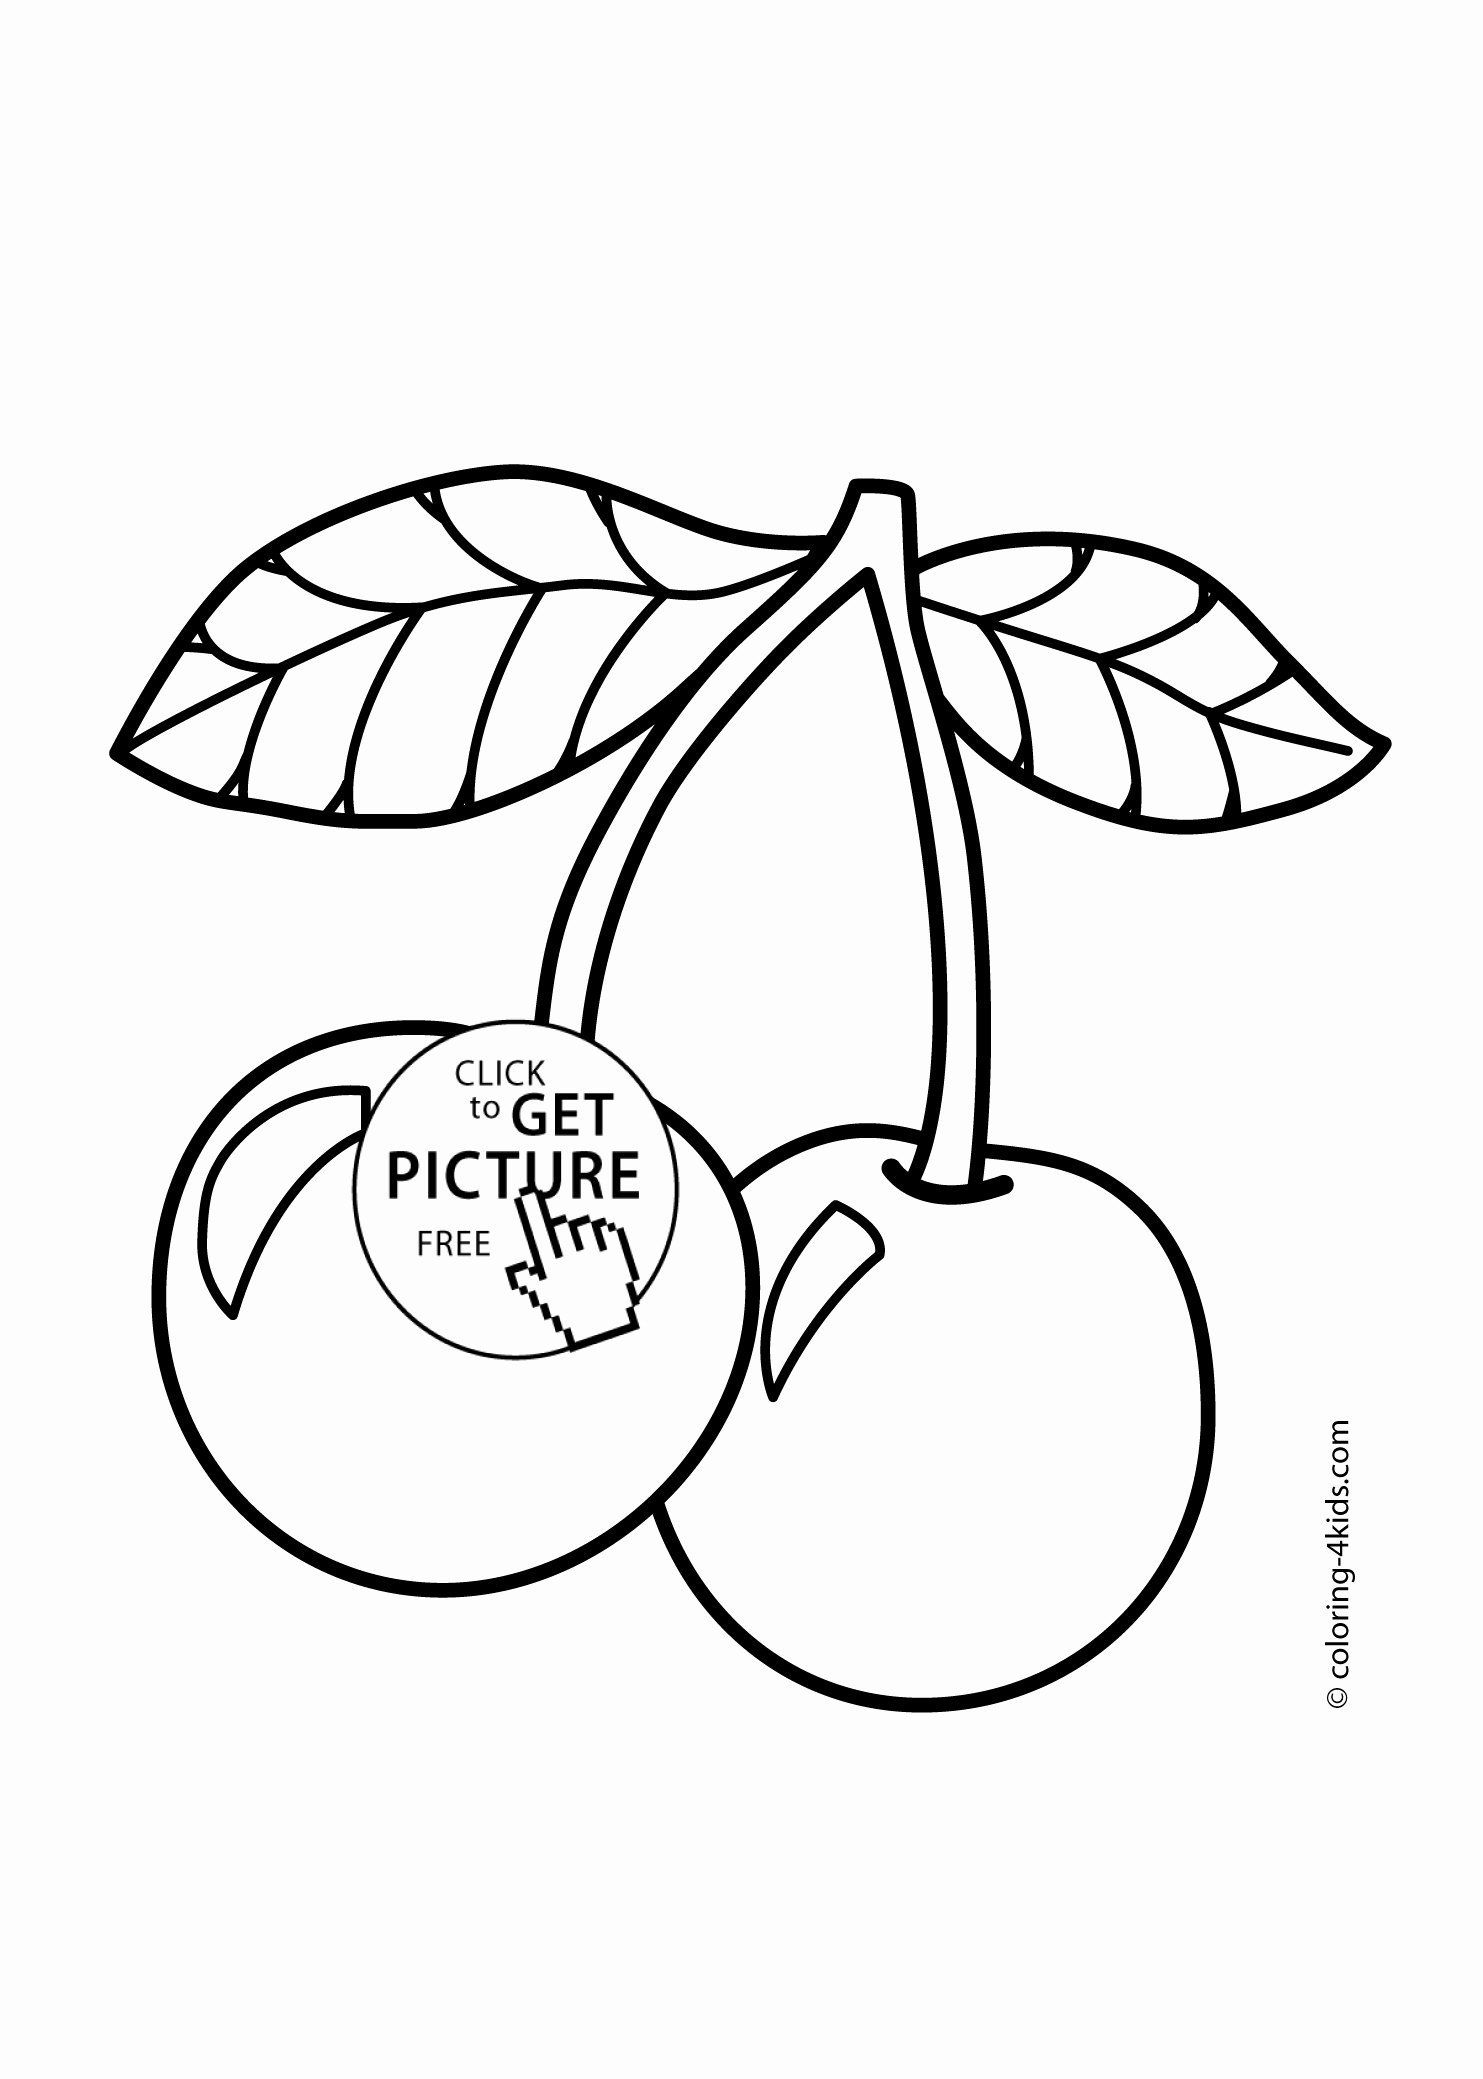 Coloring Books For Kids Fruits Pdf Lovely Cherry Coloring Pages In 2021 Fruits For Kids Coloring Books Coloring Pages